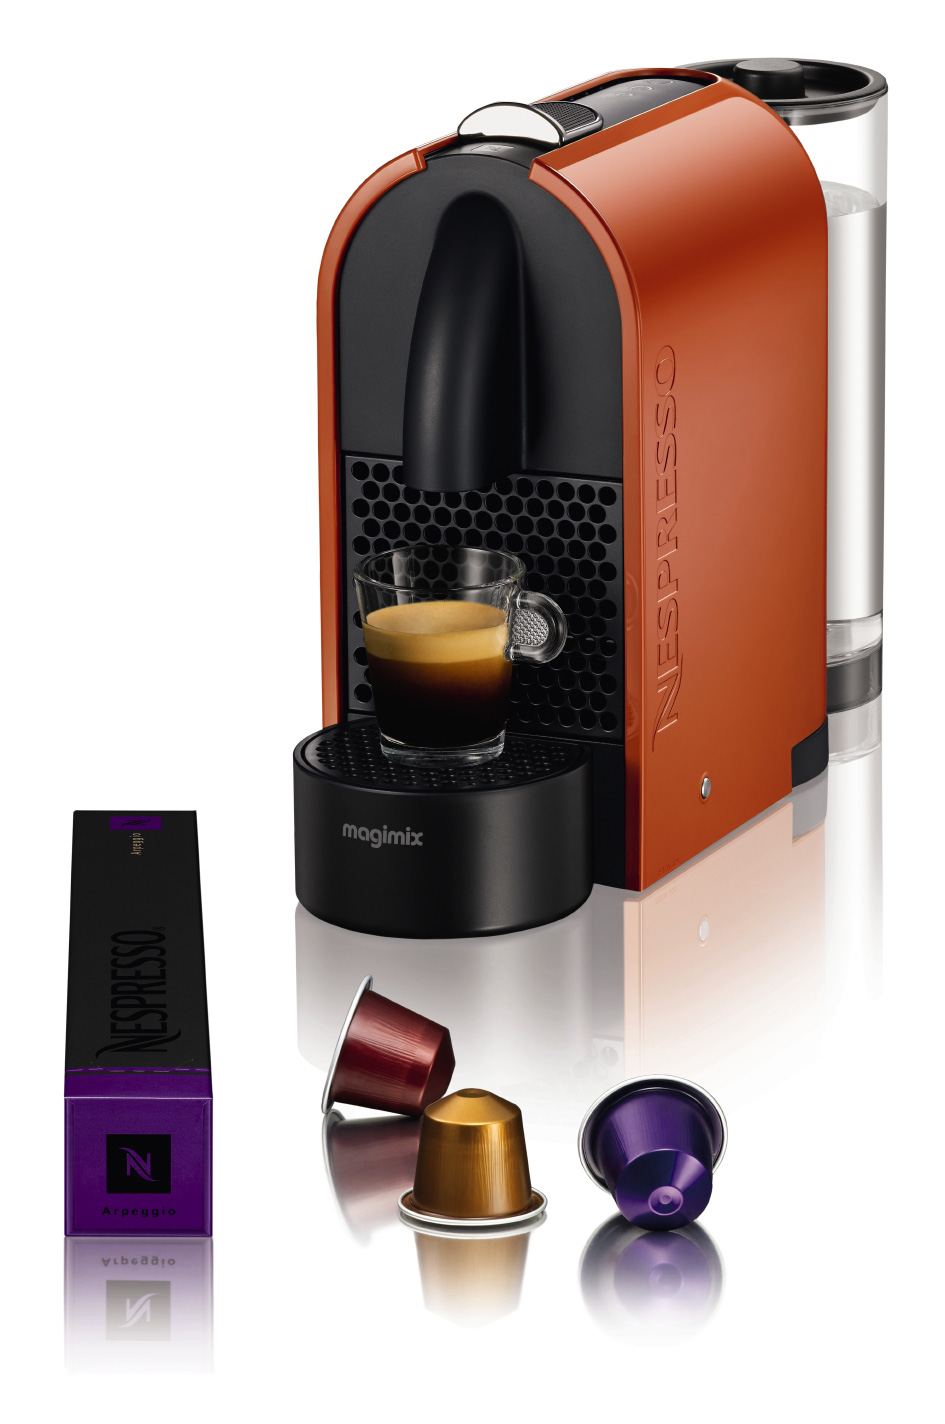 nespresso magimix m130 orange 11341. Black Bedroom Furniture Sets. Home Design Ideas